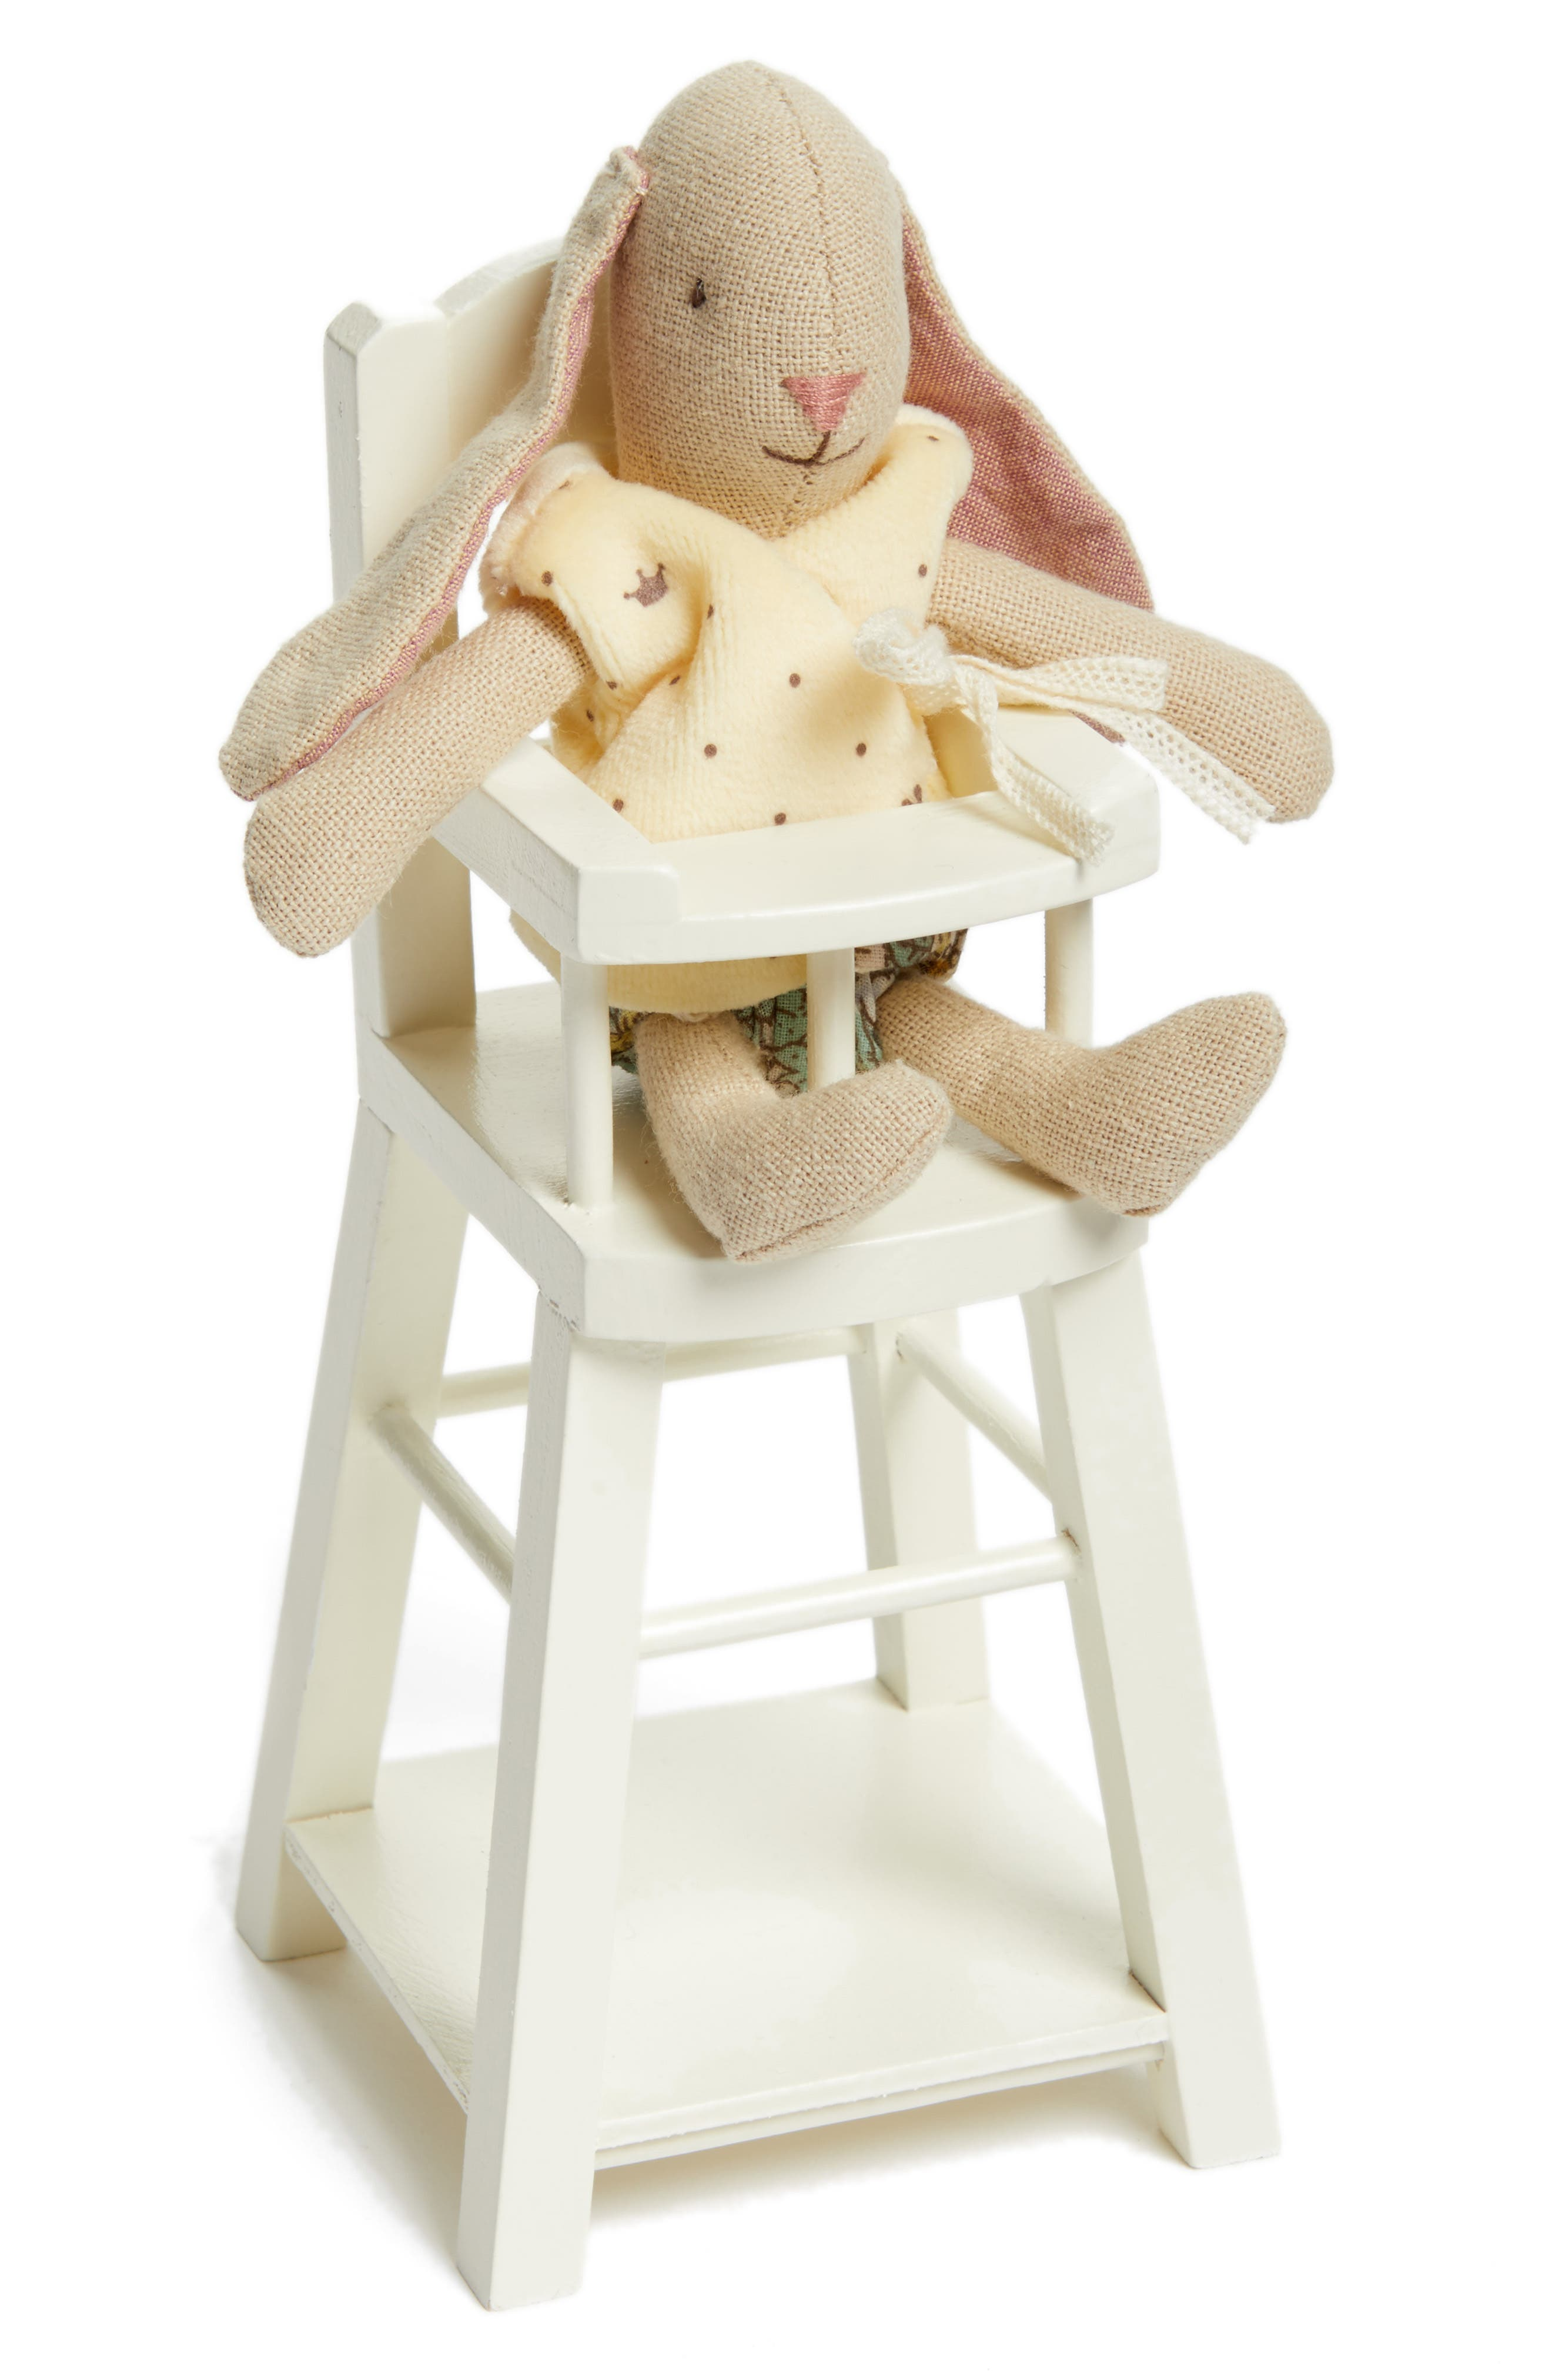 Main Image - Maileg Micro Bunny Rabbit Stuffed Animal and Highchair